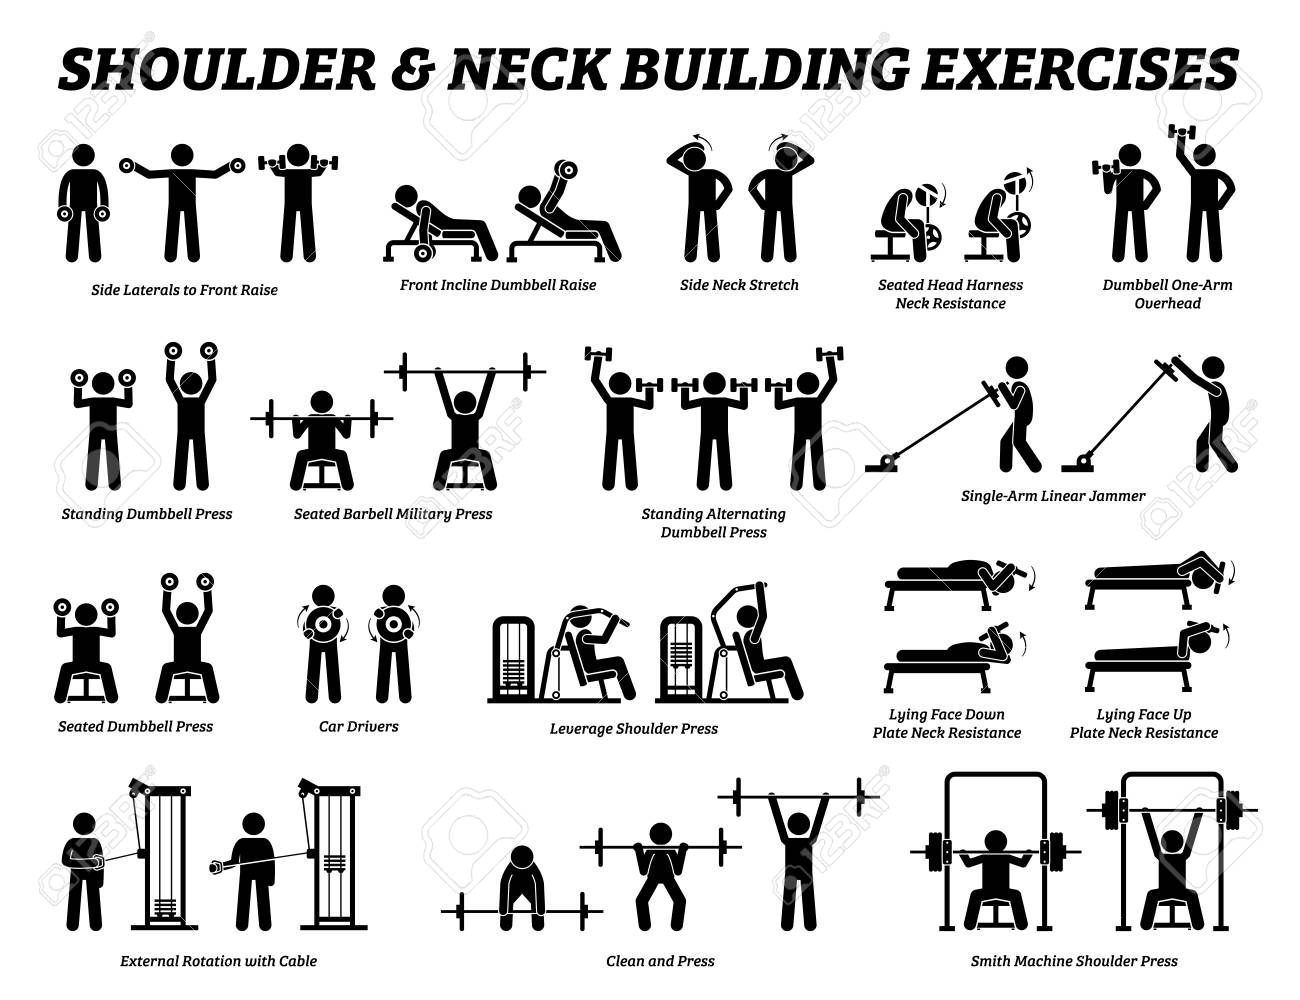 Shoulder and neck building exercise and muscle building stick figure pictograms. Set of weight training reps workout for shoulder and neck by gym machine tools with instructions and steps. - 120637900